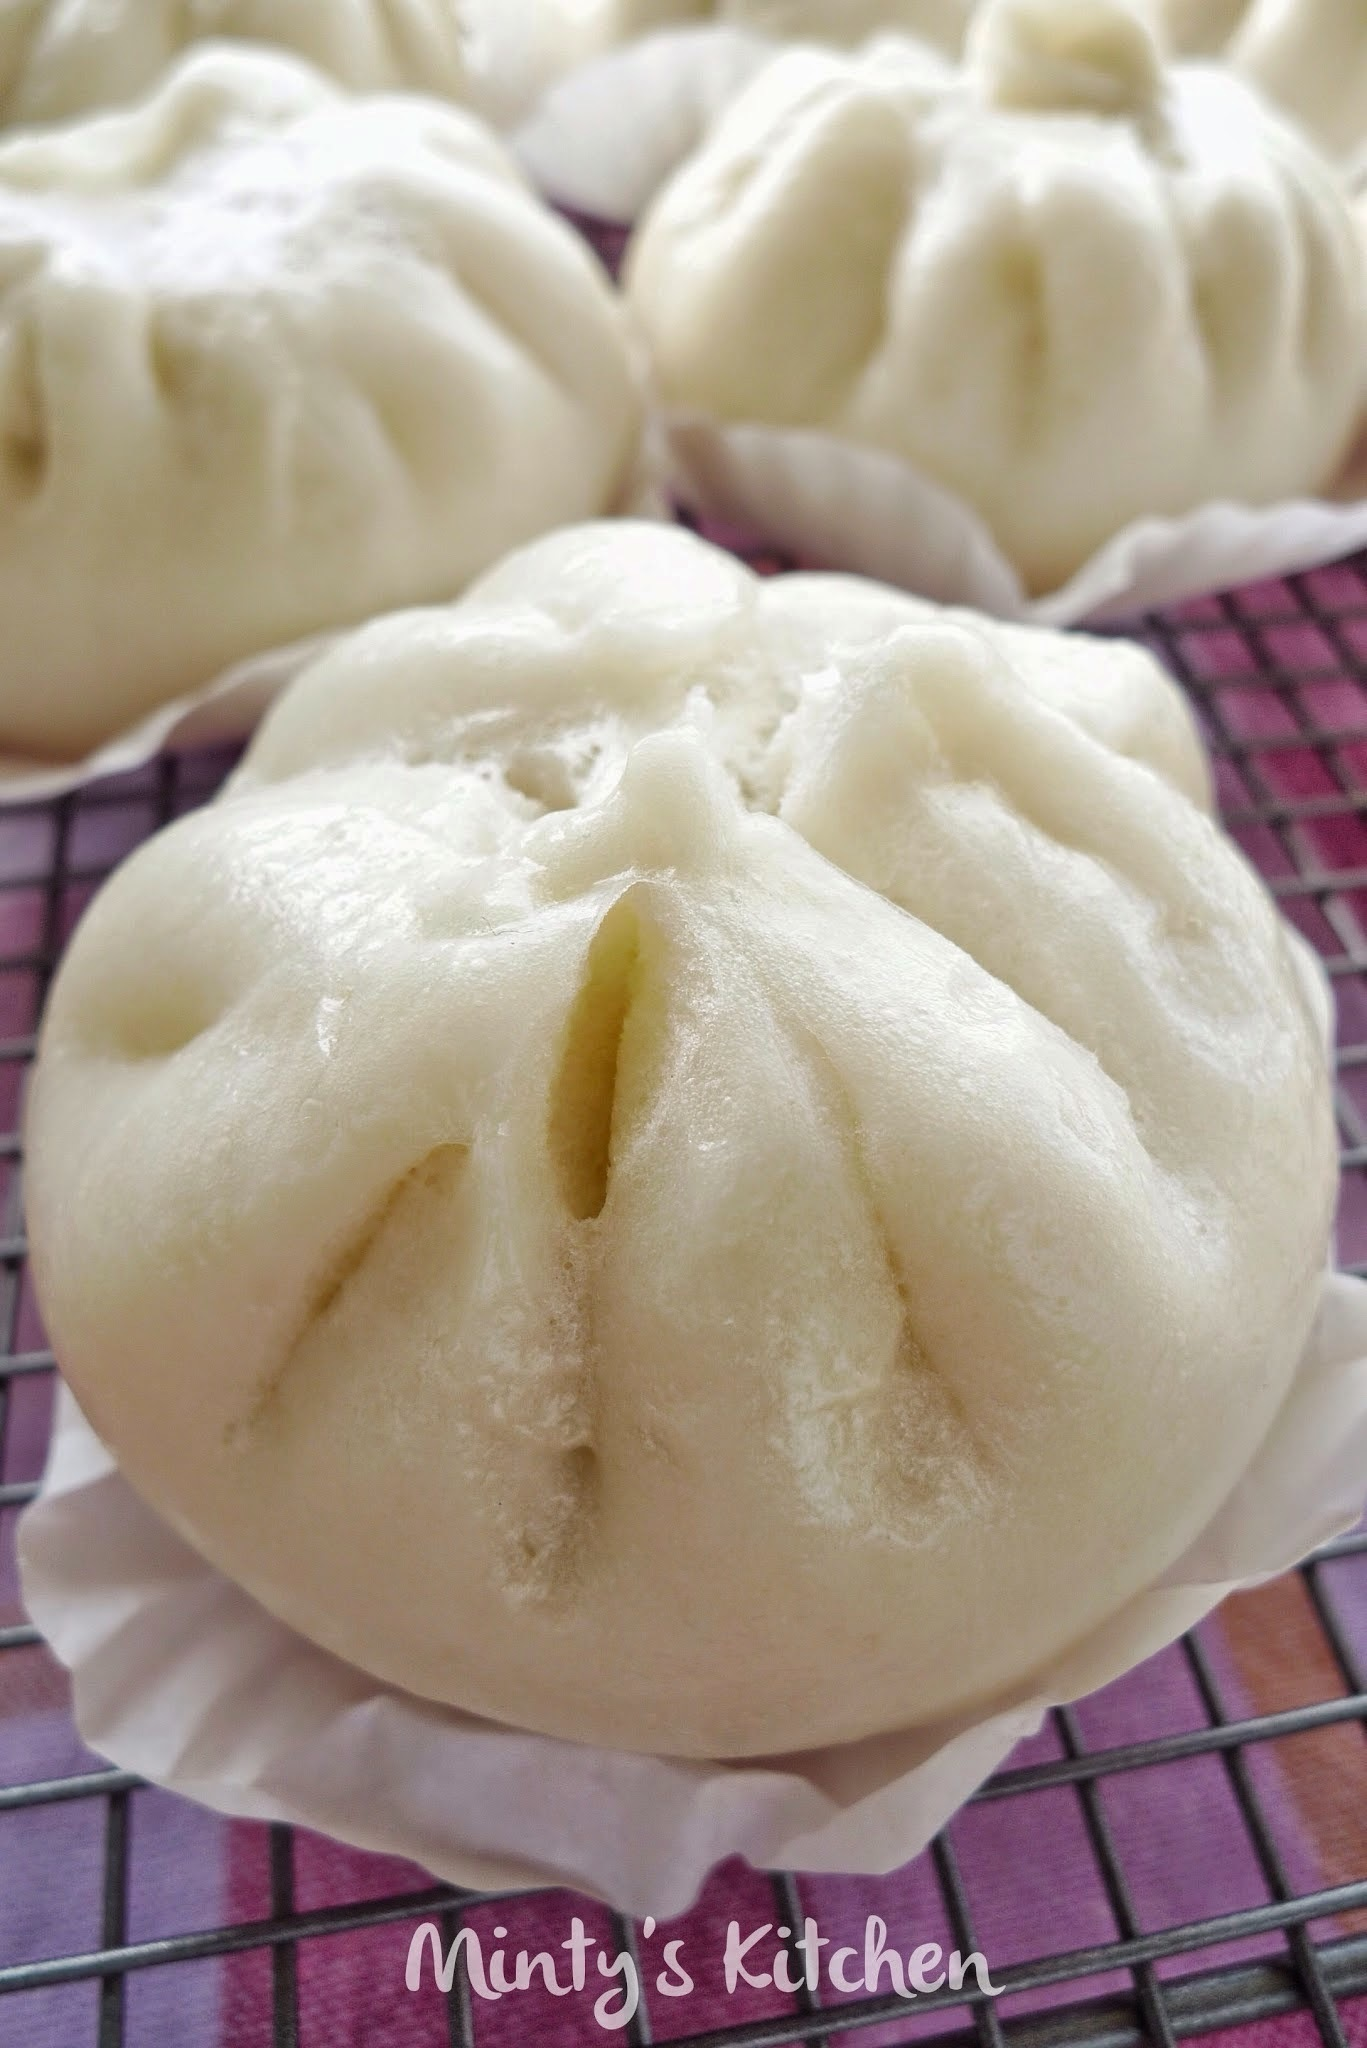 Steamed Roasted Pork Buns / Cha Siew Bao   [叉烧包]